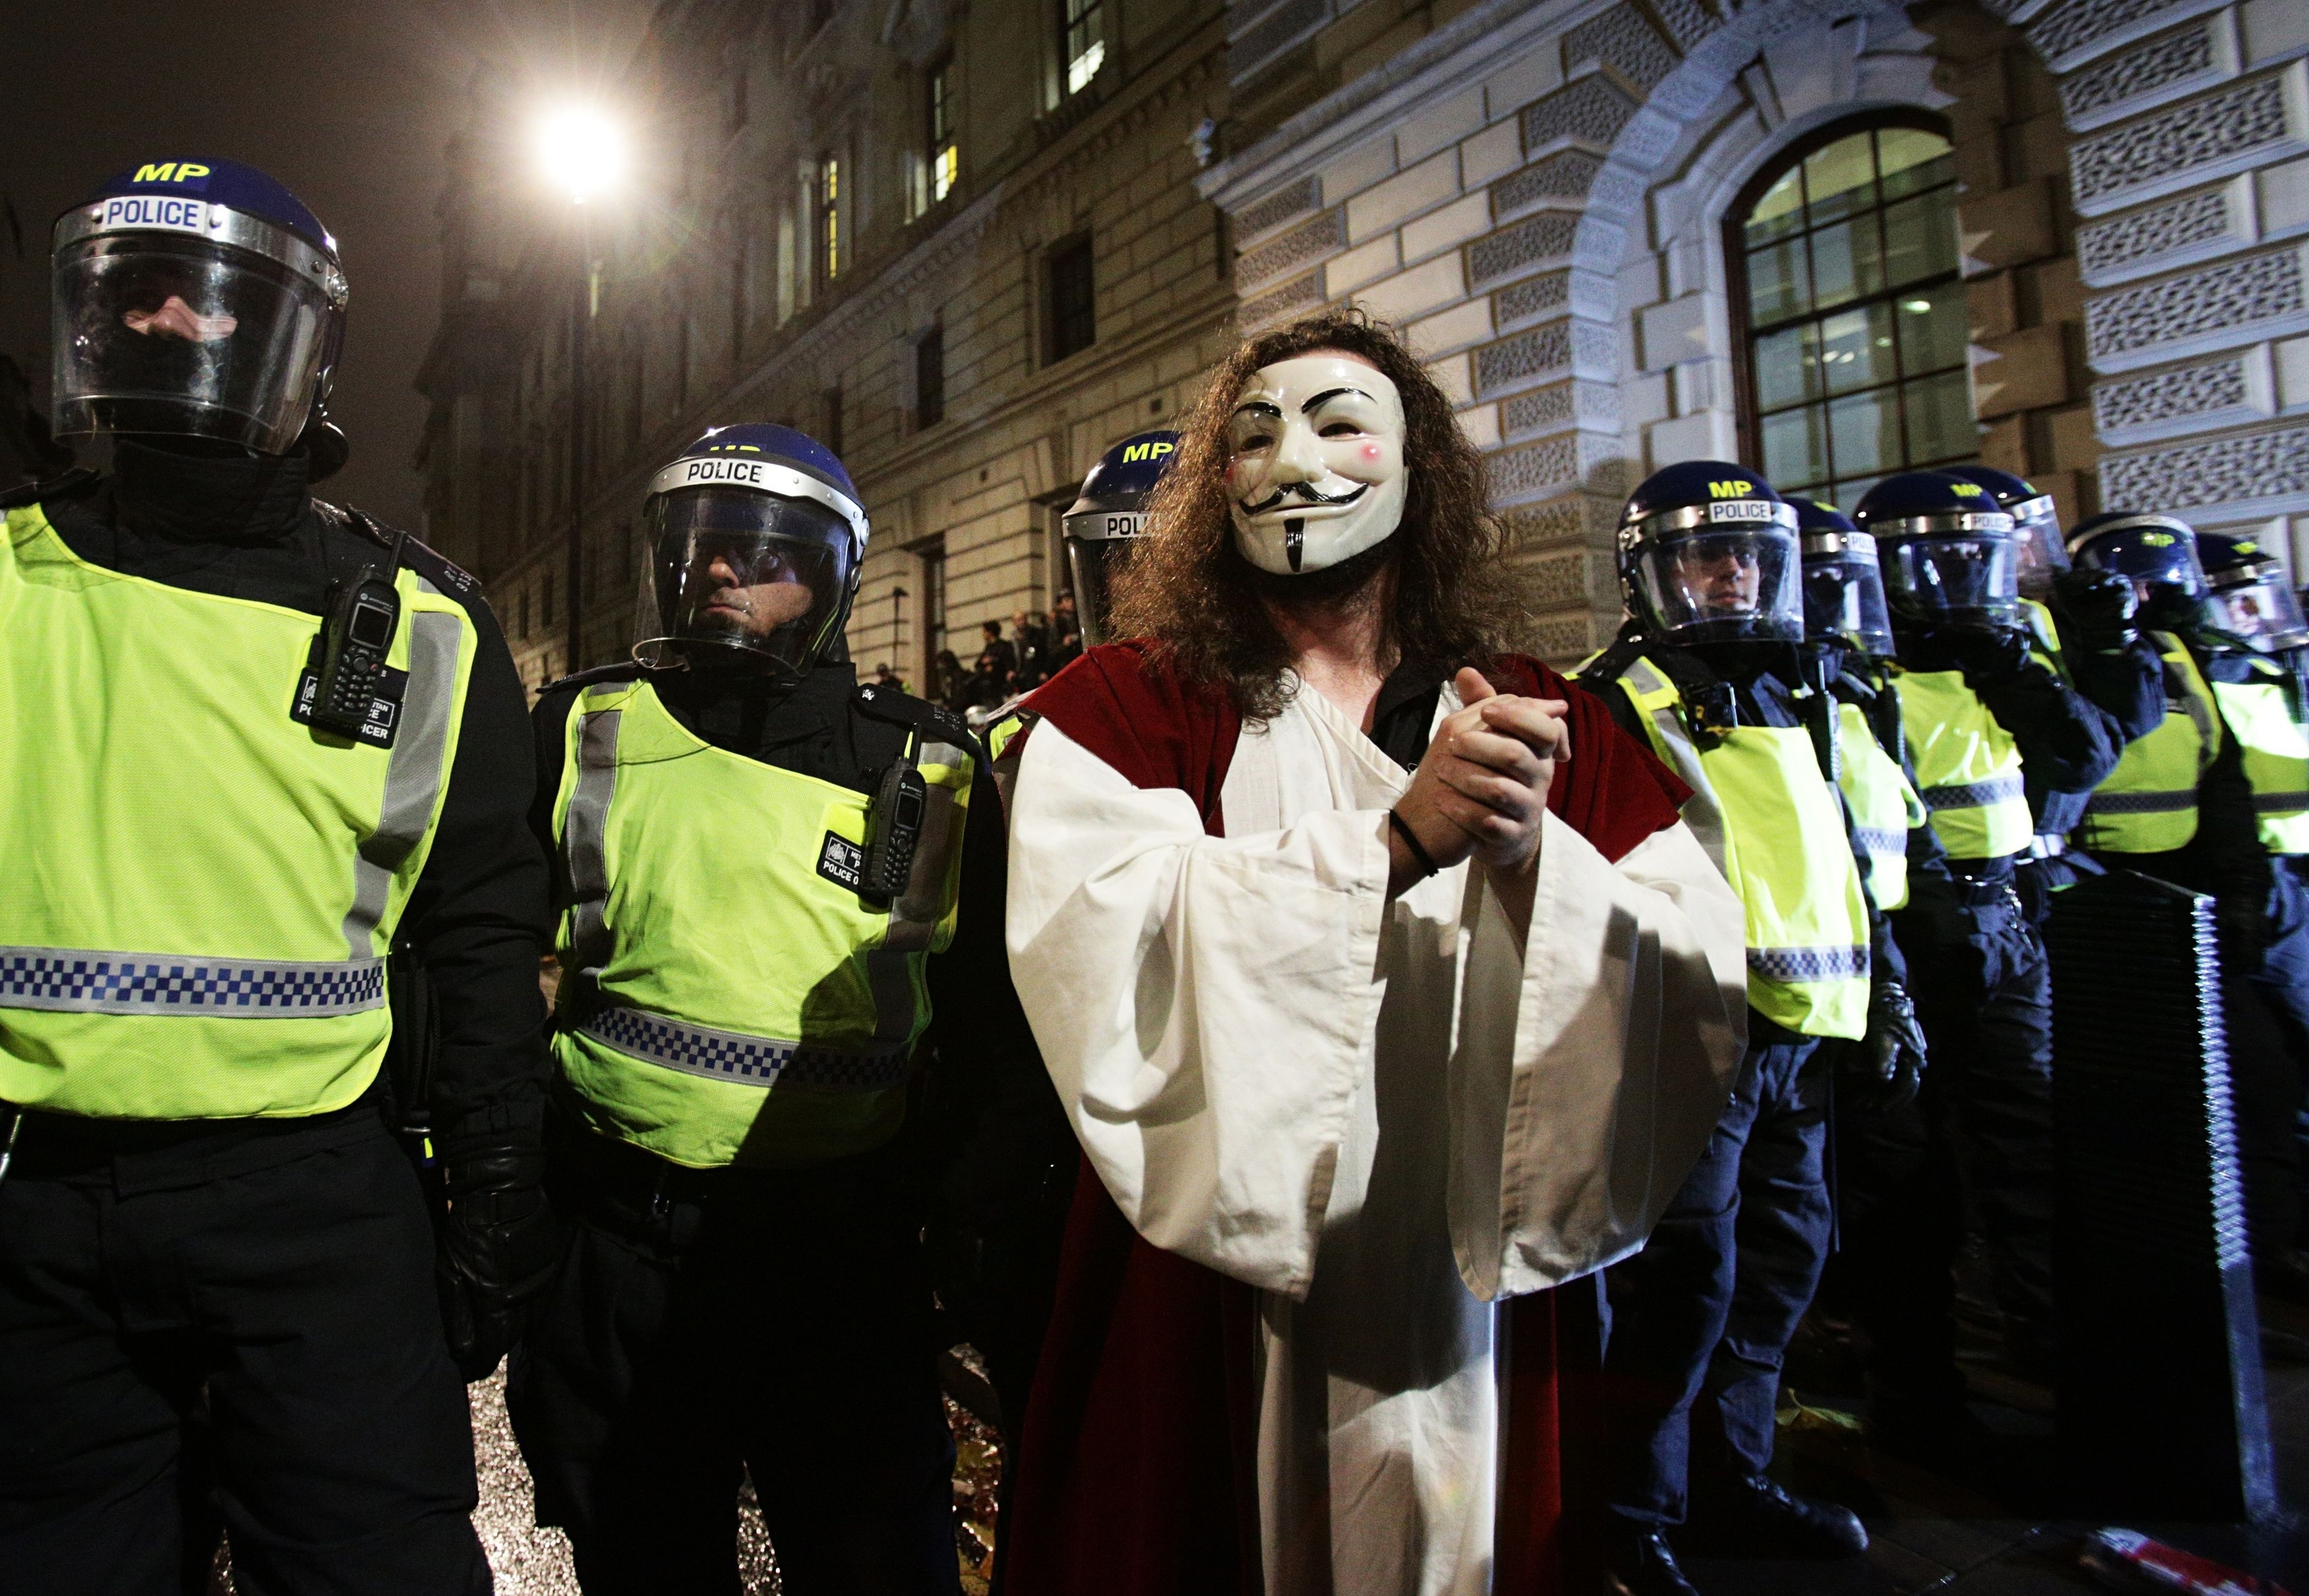 A protester stands in front of police officers during the Million Mask March bonfire night protest in central London, organised by activist group Anonymous.